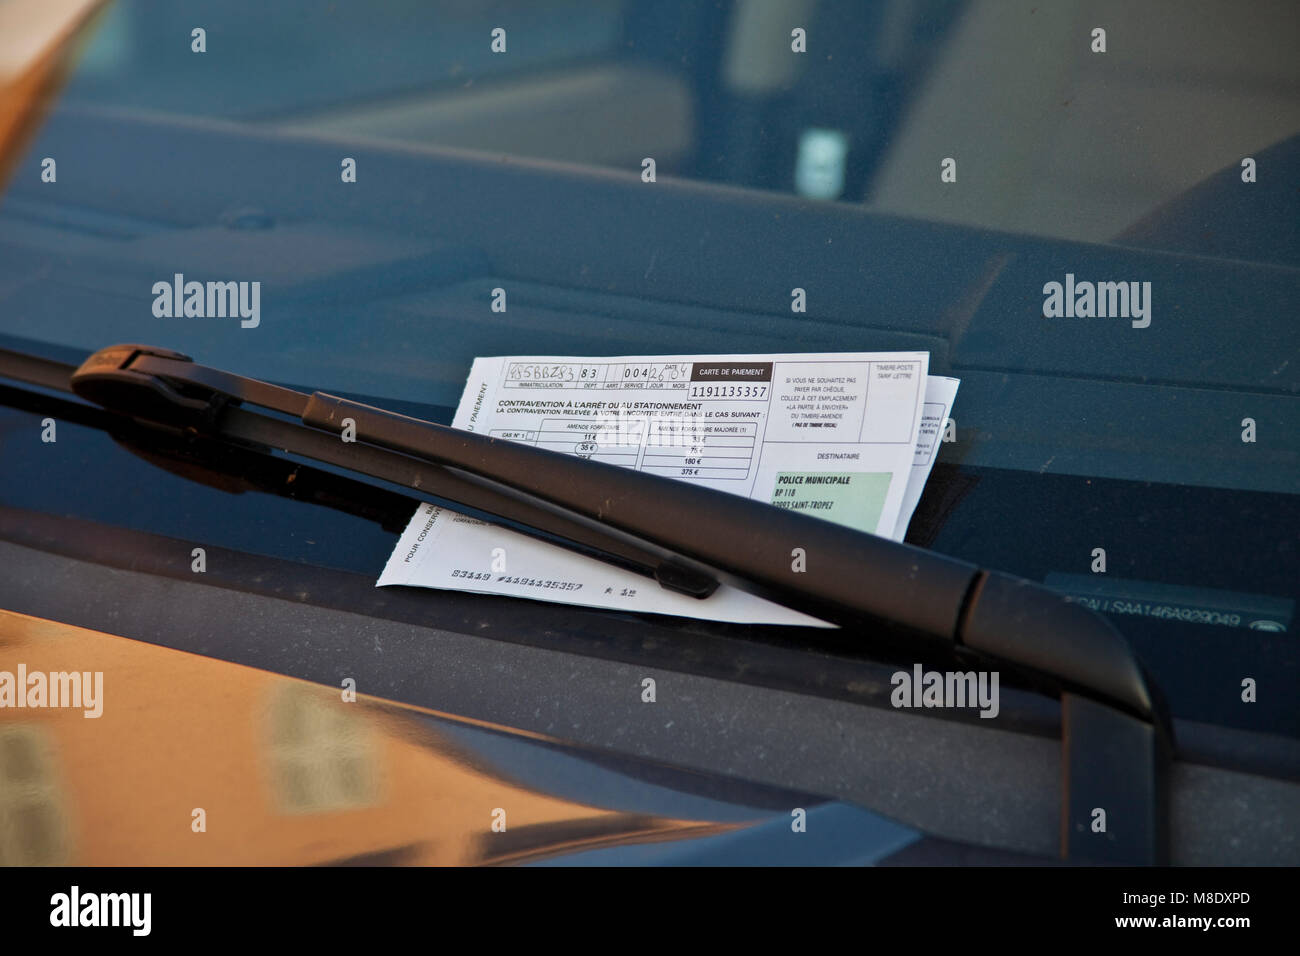 Traffic ticket for a parking violator, Saint-Tropez, french riviera, South France, Cote d'Azur, France, Europe Stock Photo